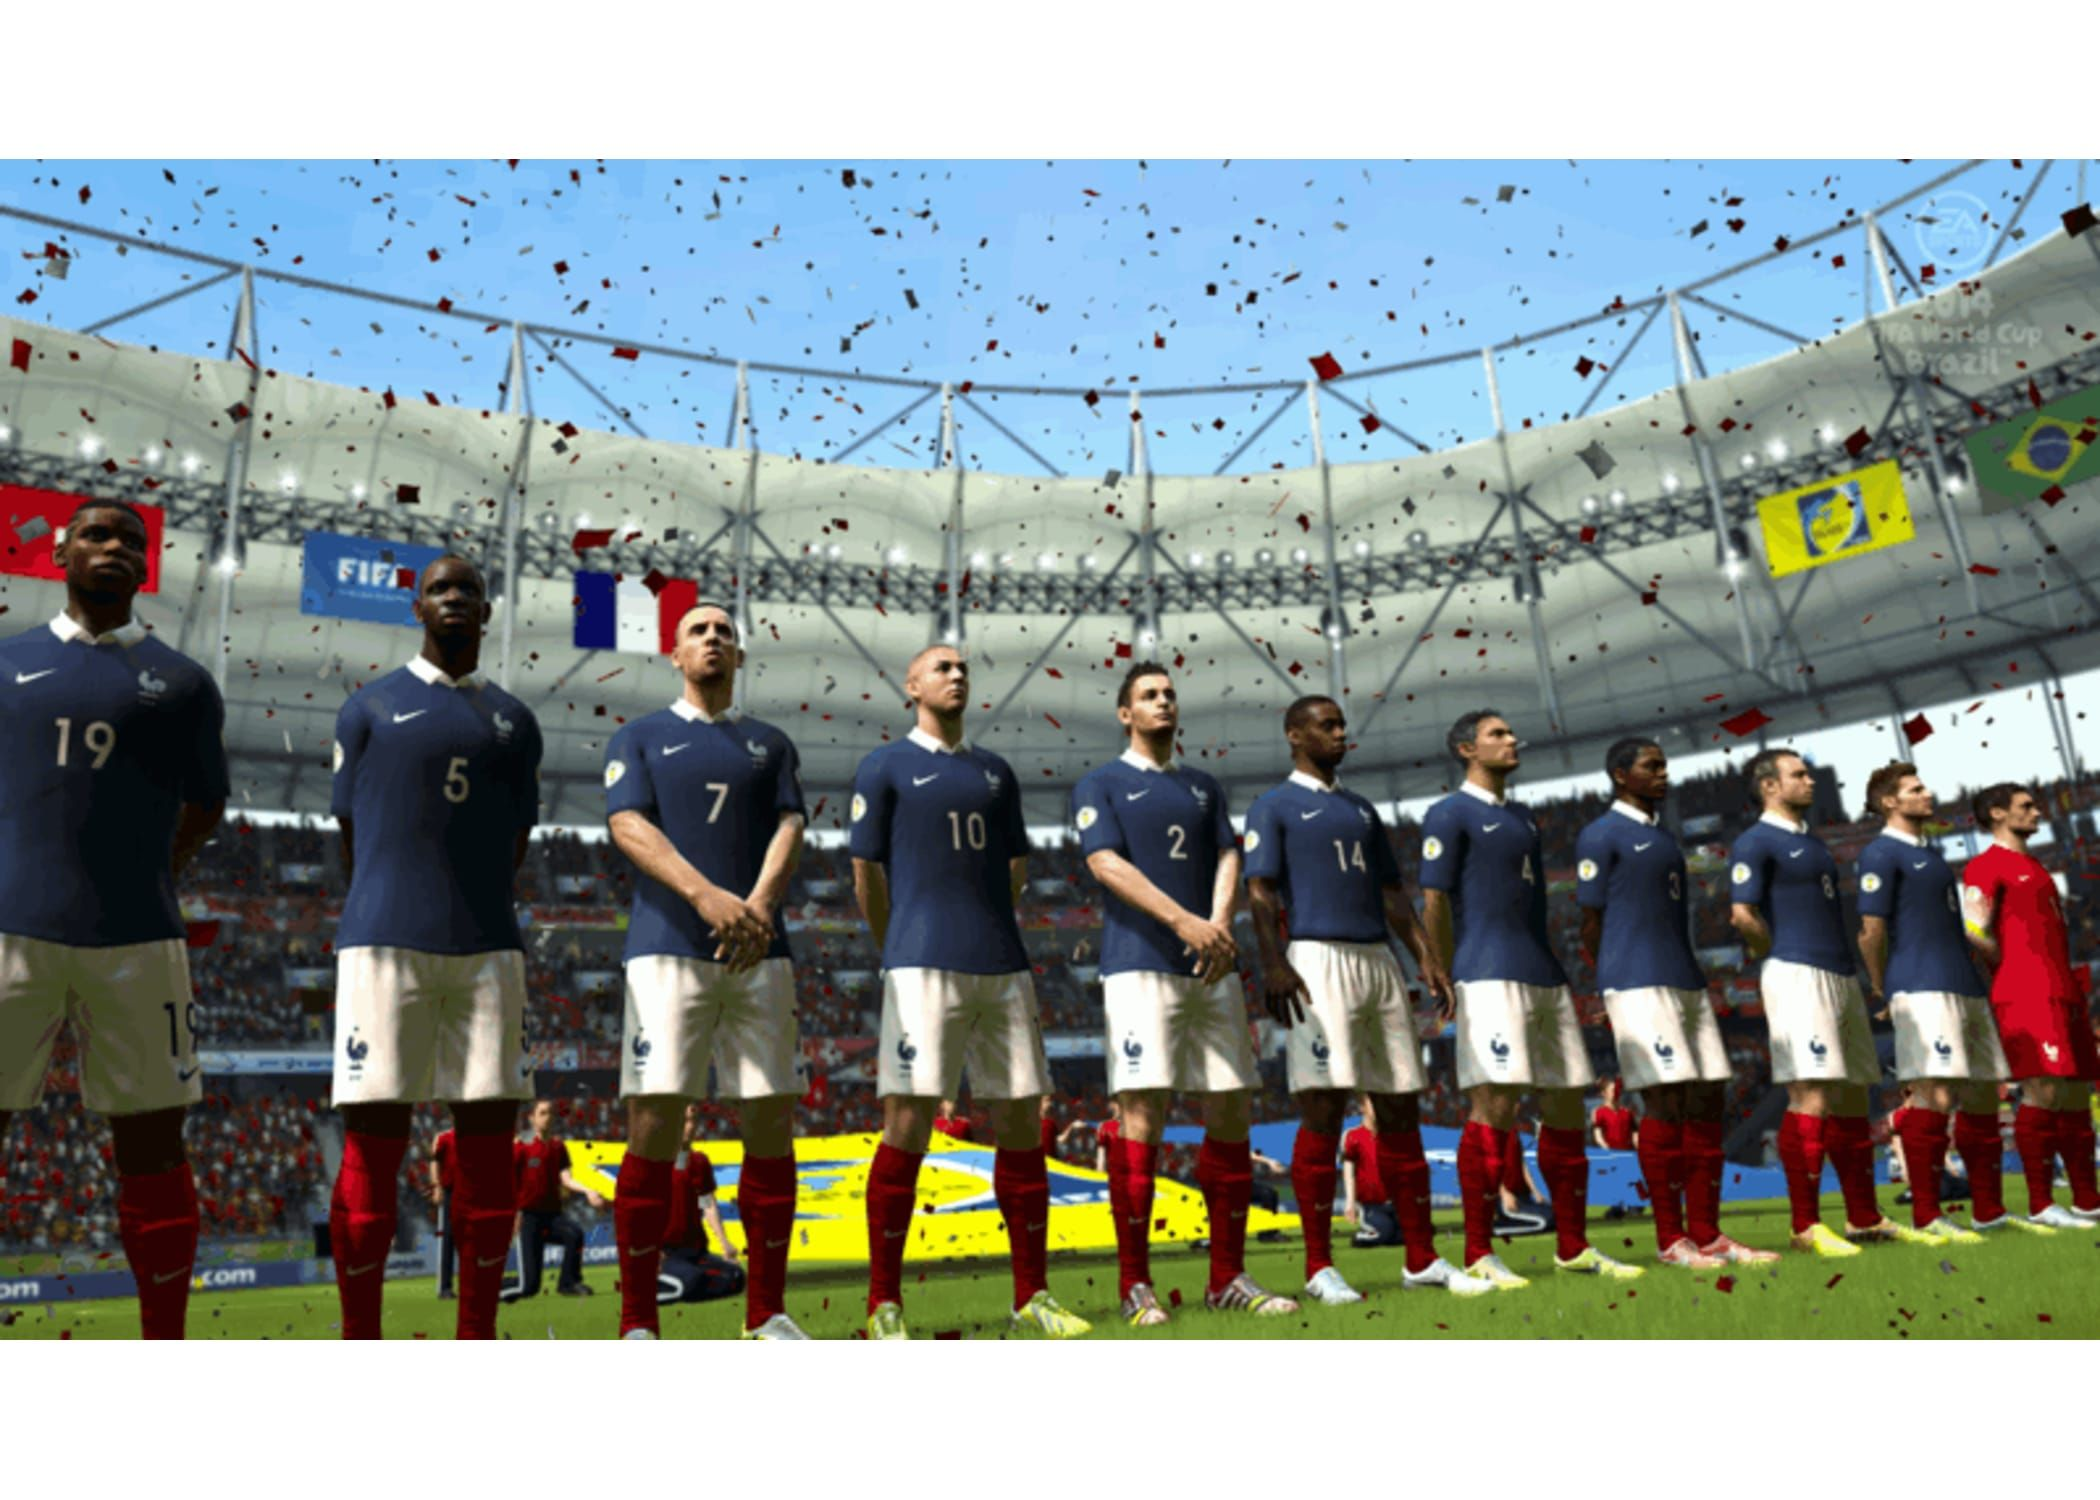 Buy Ea Sports 2014 Fifa World Cup Brazil On Playstation 3 Game Affiliate Affiliate Fifa Sports Buy Ea Pl In 2020 Fifa World Cup Game Fifa Fifa World Cup